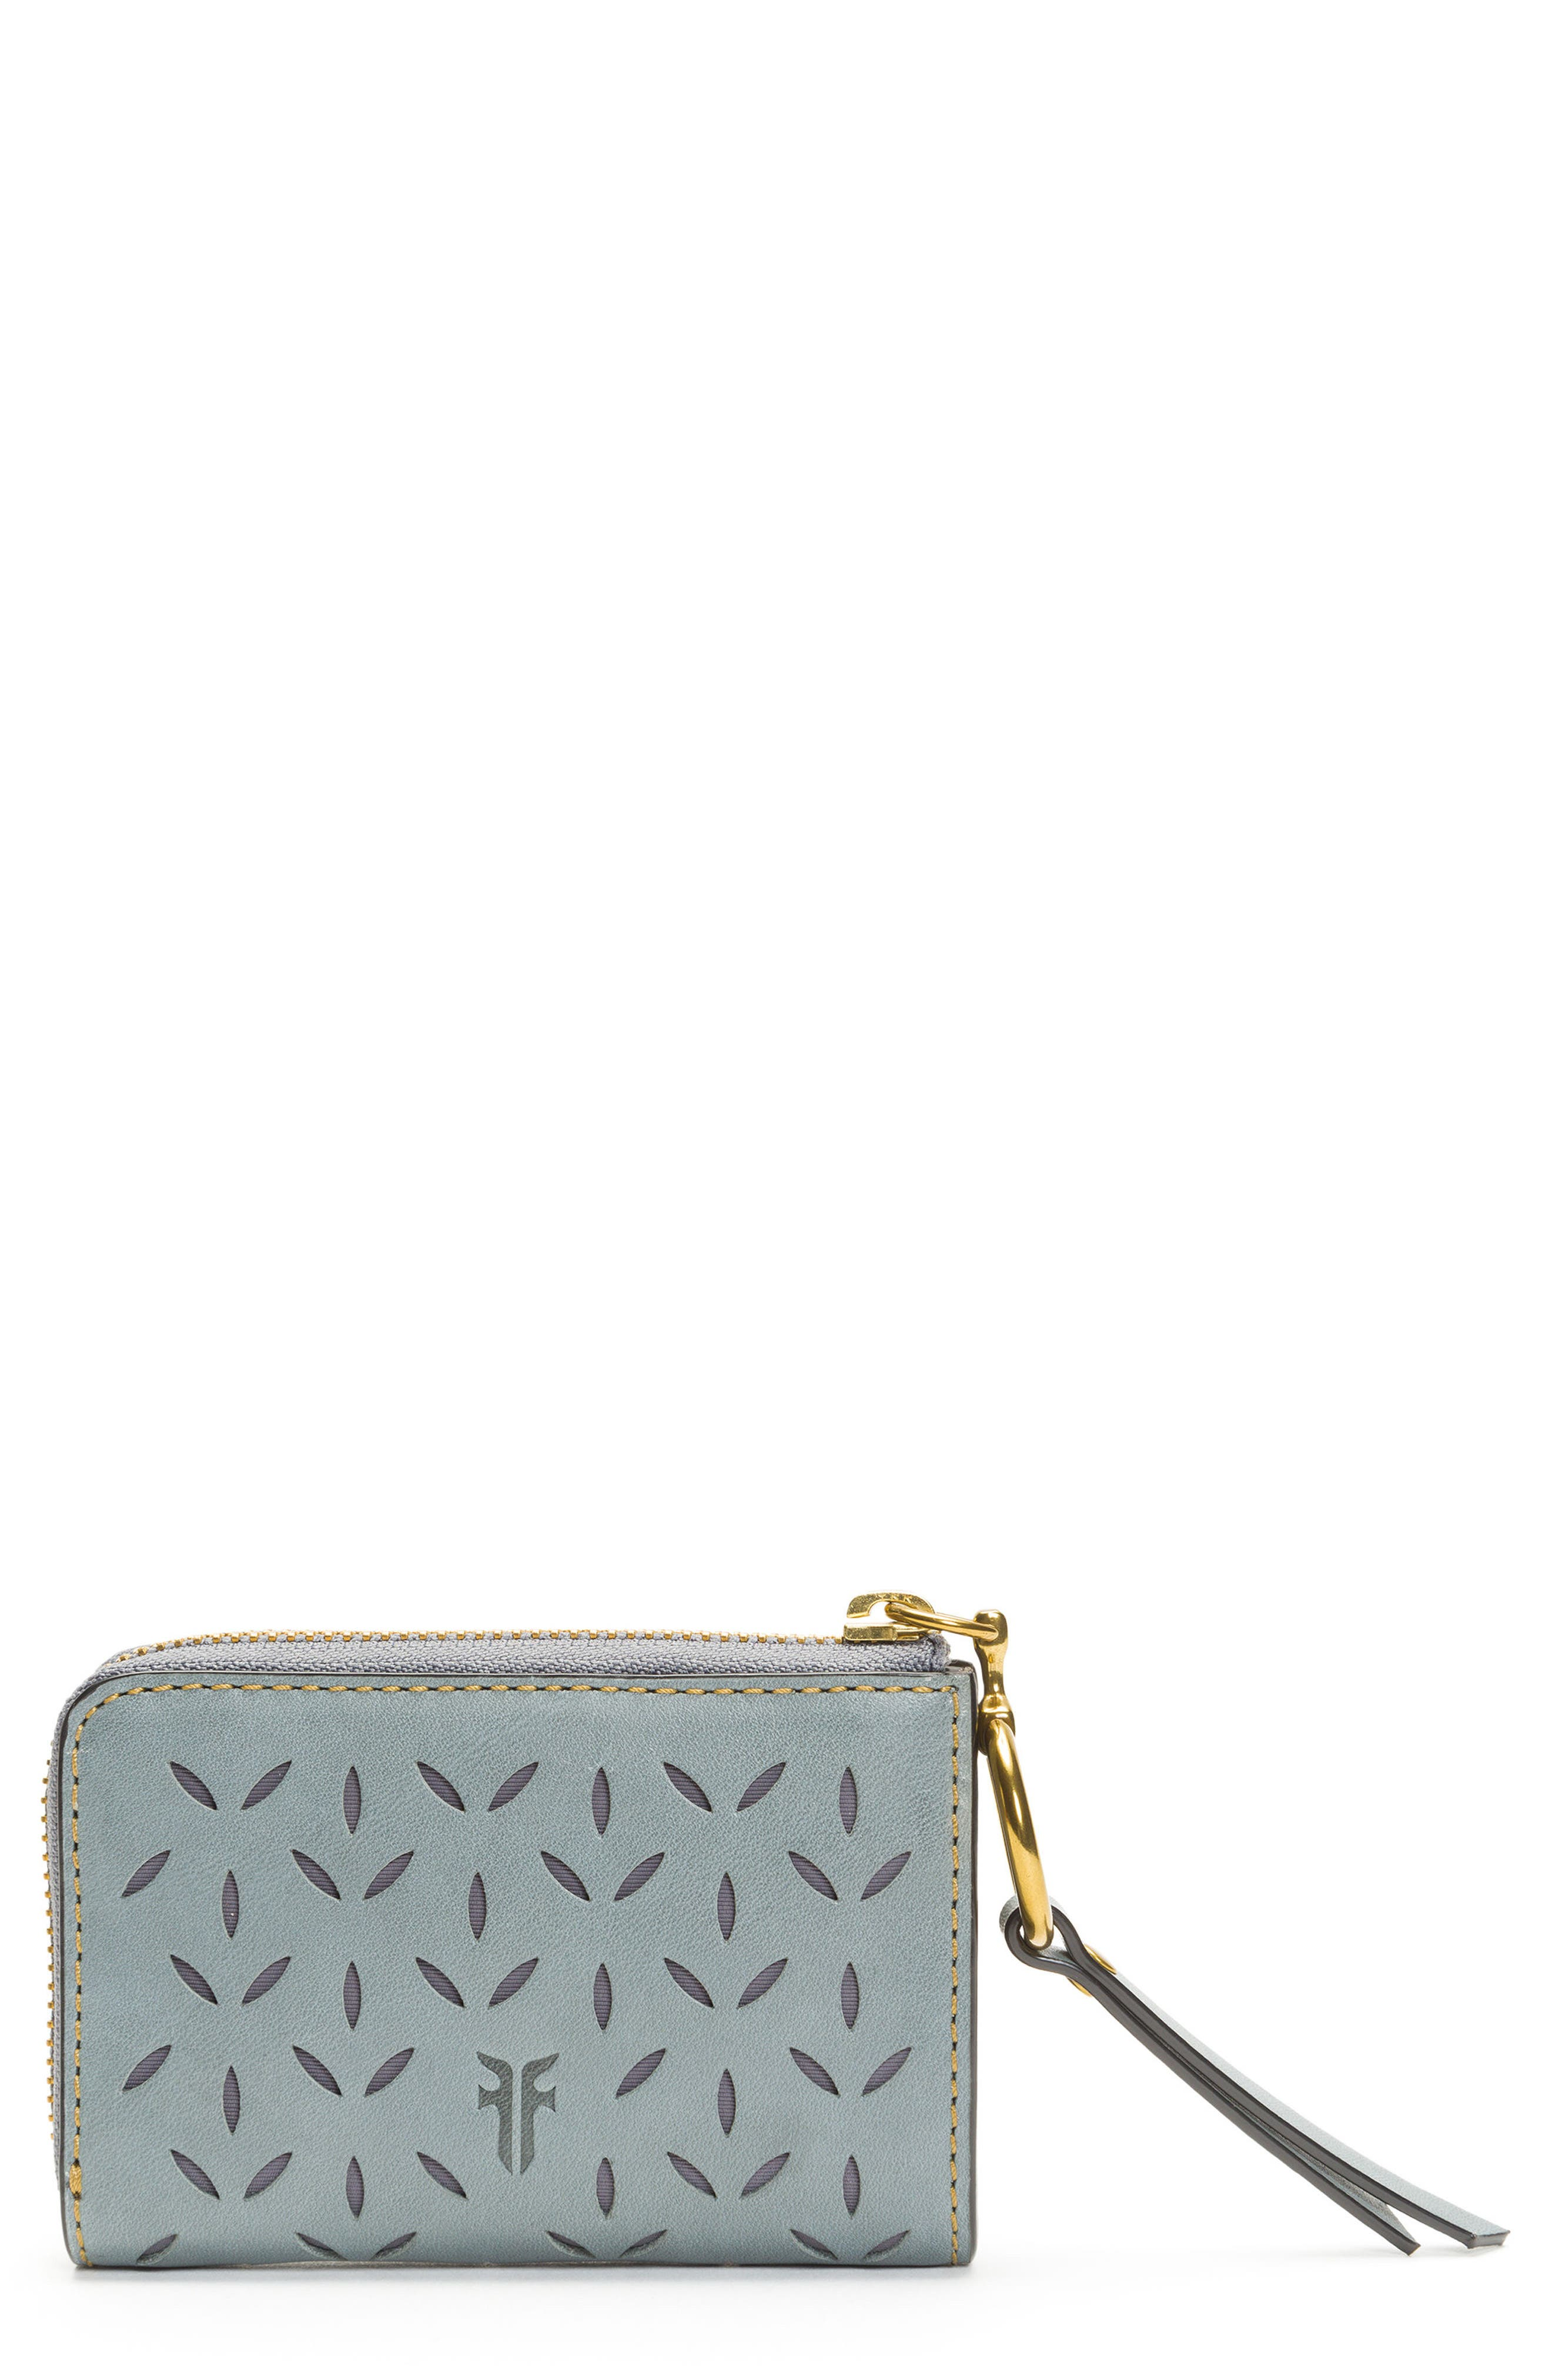 Frye Ilana Small Perforated Leather Zip Wallet